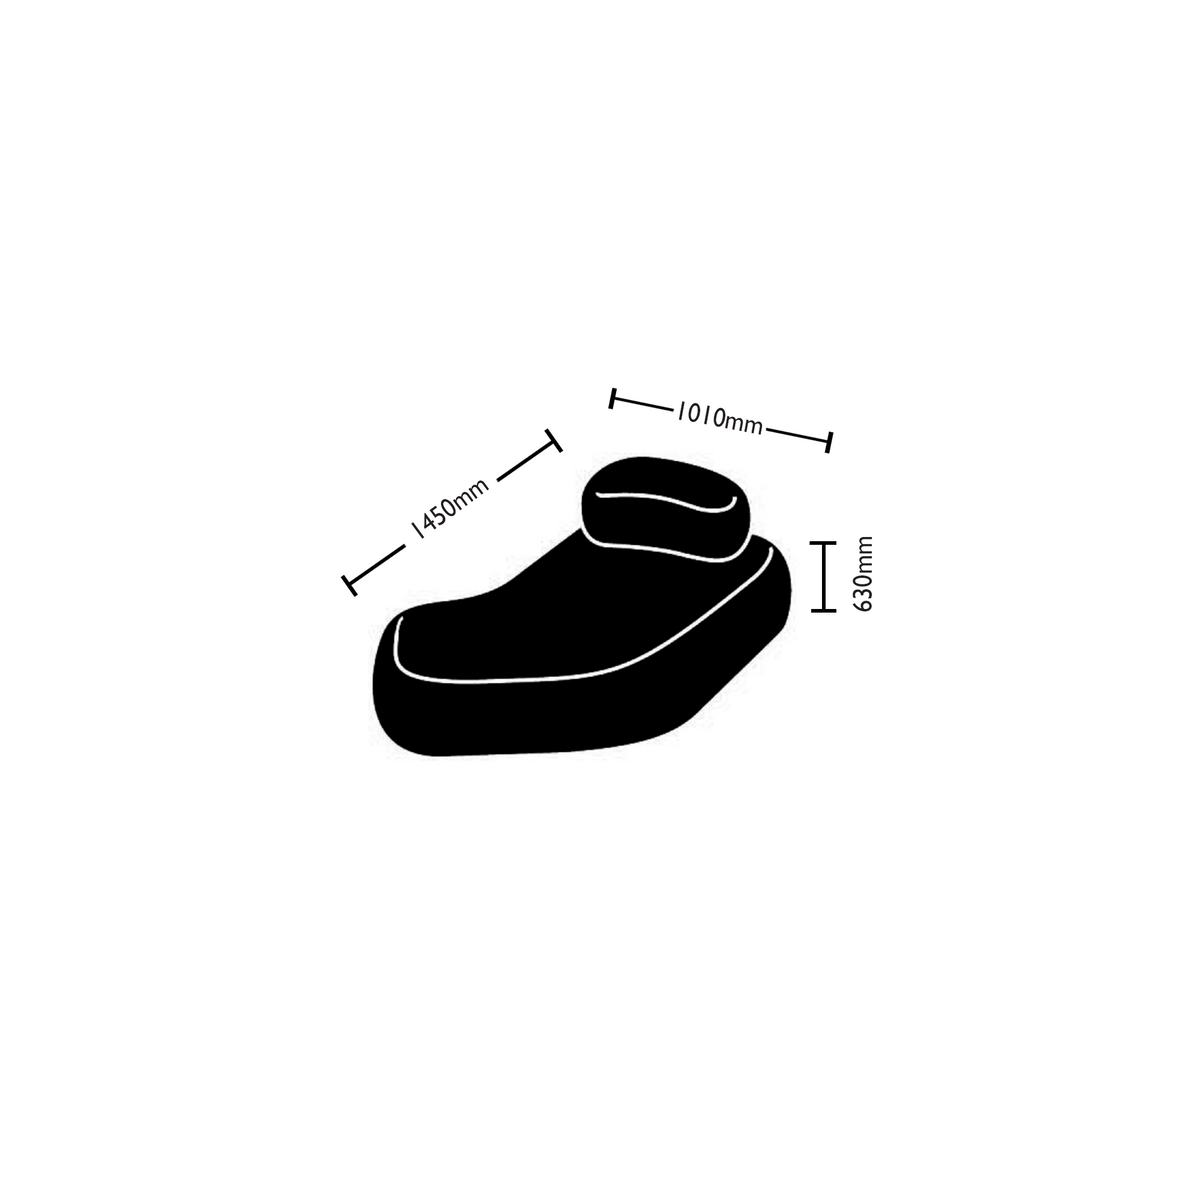 Dimensions for Hitch Mylius Office HM63c Pebble Seating